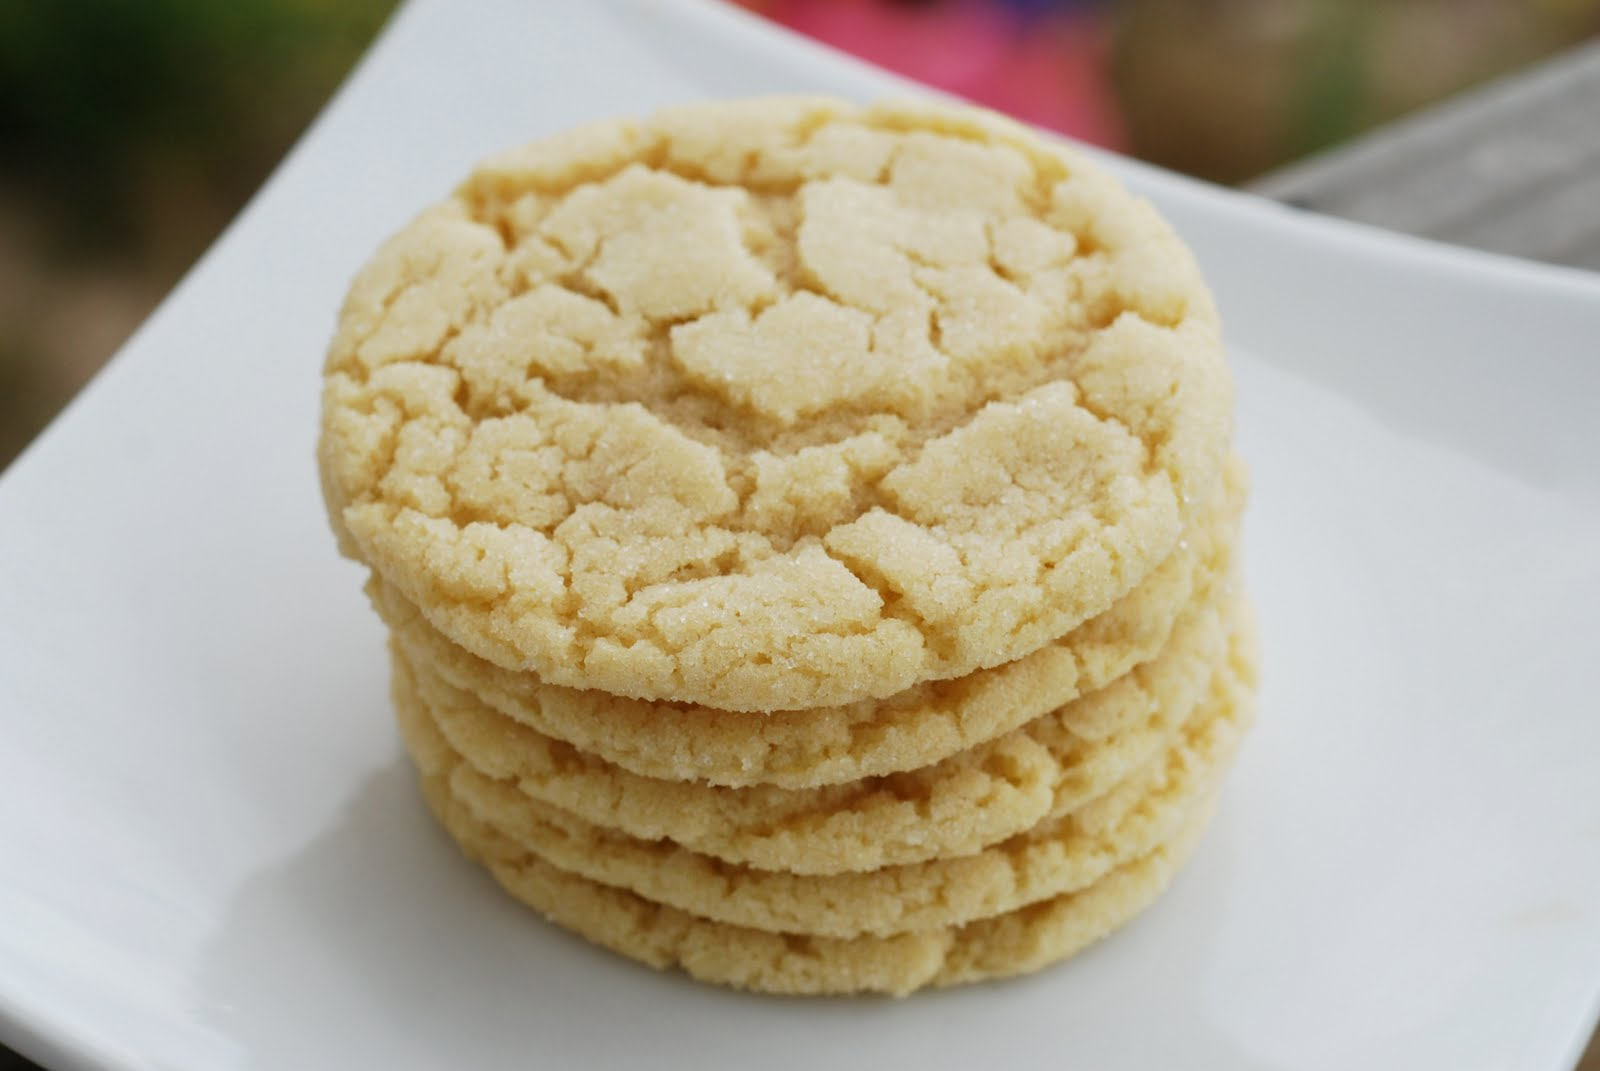 See Jane in the kitchen: Drop Sugar Cookies